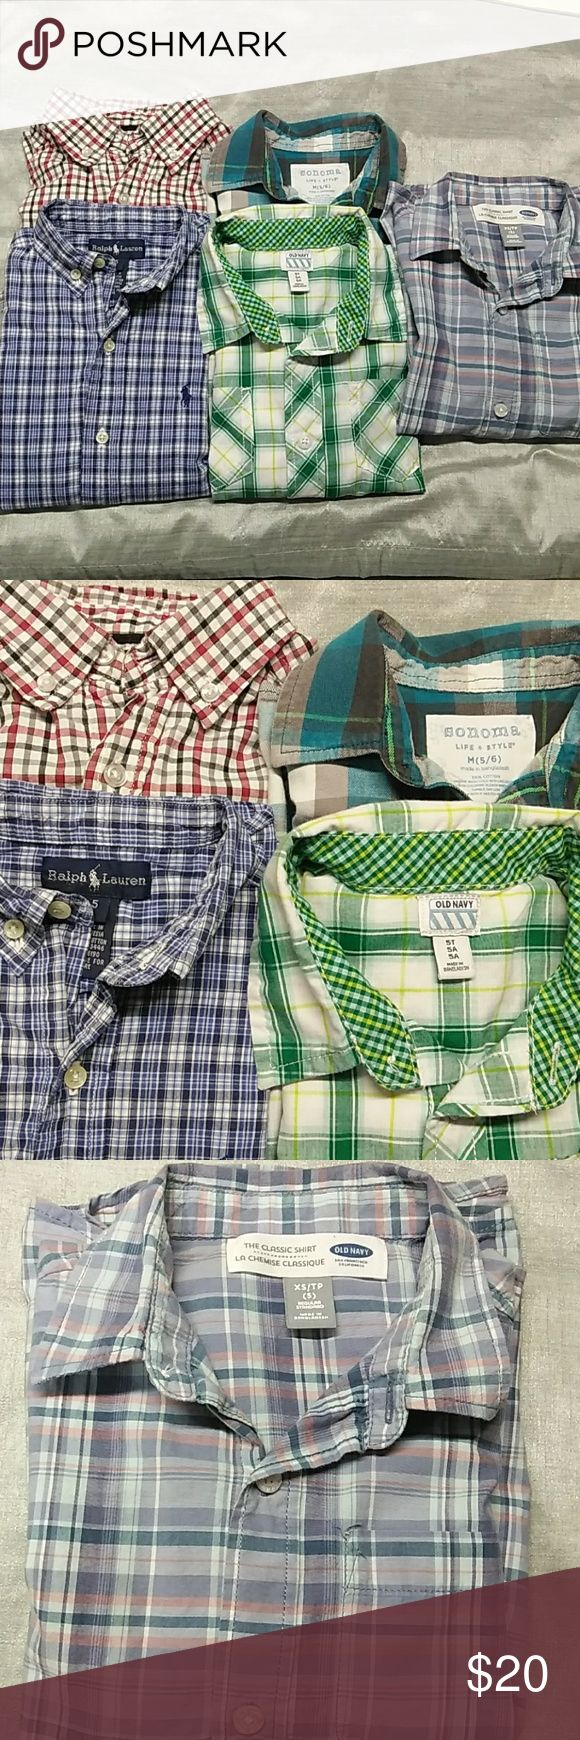 5 Pieces 5T long sleeve Polo shirts Ralph Lauren: checkered blue Old Navy: 2 Polo shirts checkered  Sonoma:2 pockets with buttons front Eat.  1989: checkered  red black and white Ralph Lauren, Old Navy, Sonoma, Est.1989 Shirts & Tops Polos